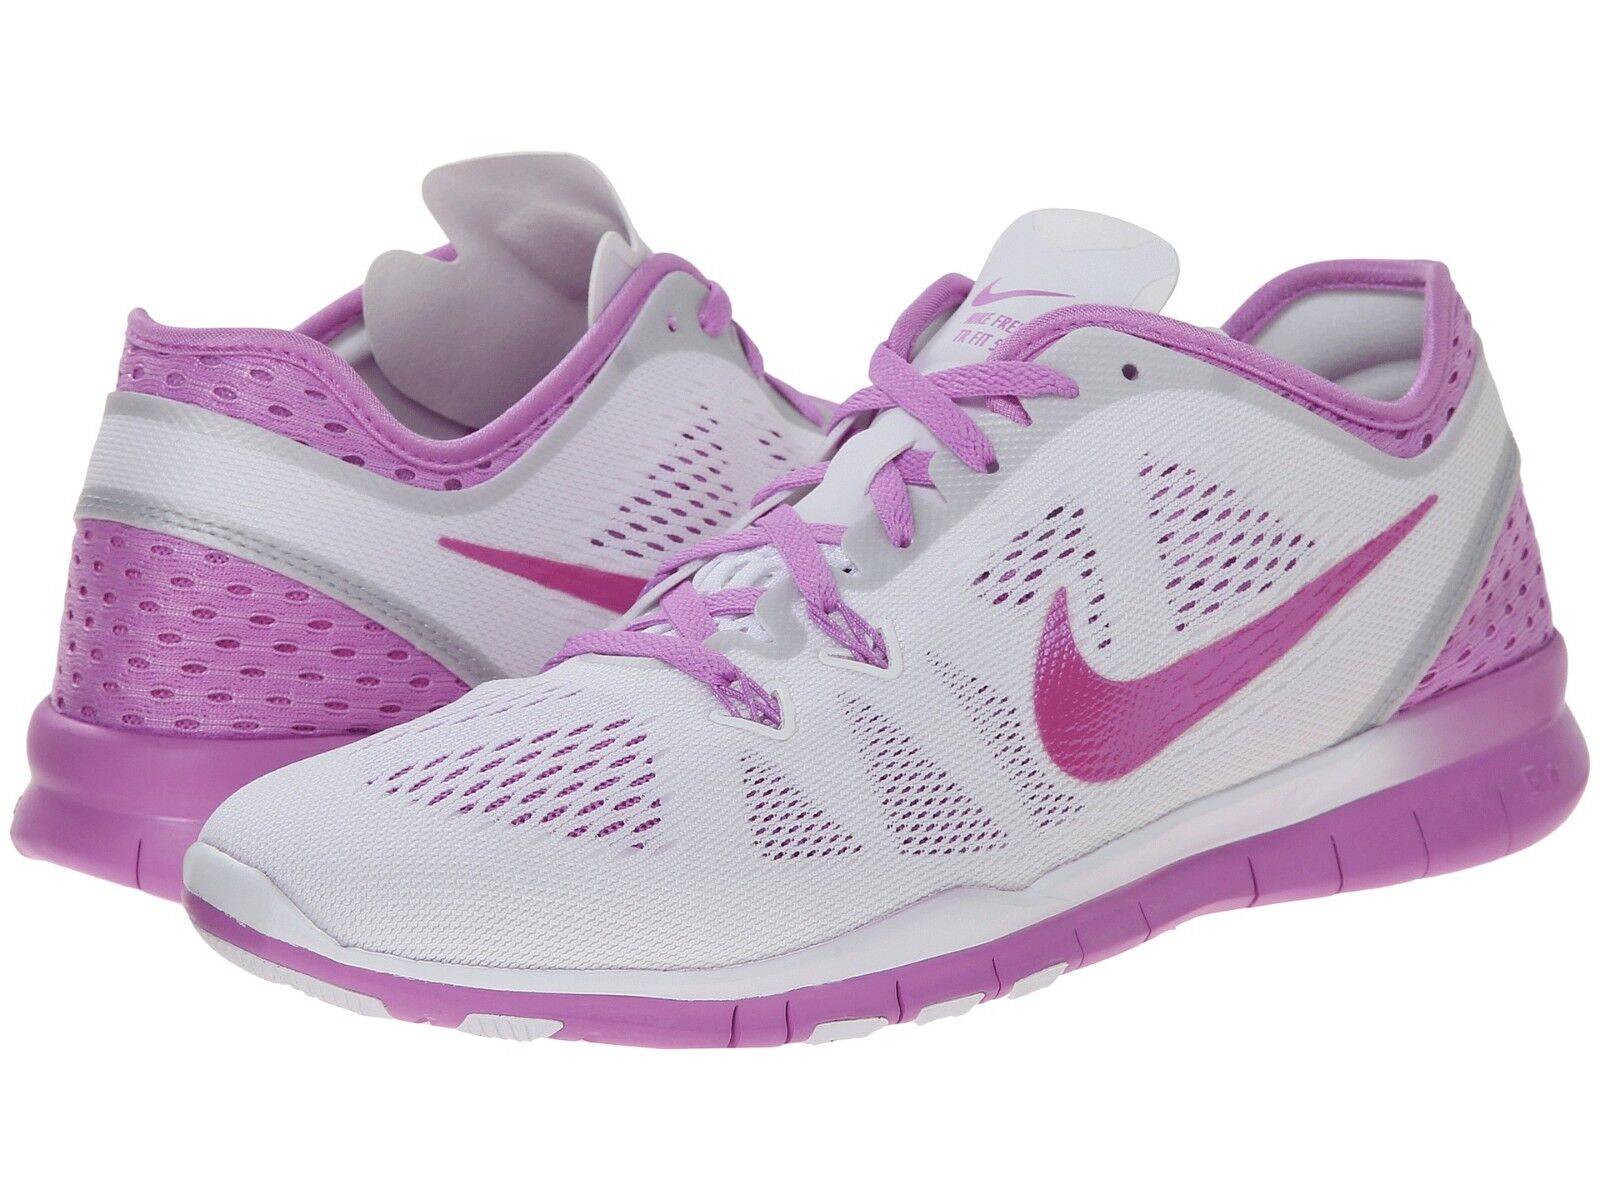 Women's Nike Free 5.0 TR Fit 5 Breathe Training Shoes, 718932 101 Size 9.5 Wh